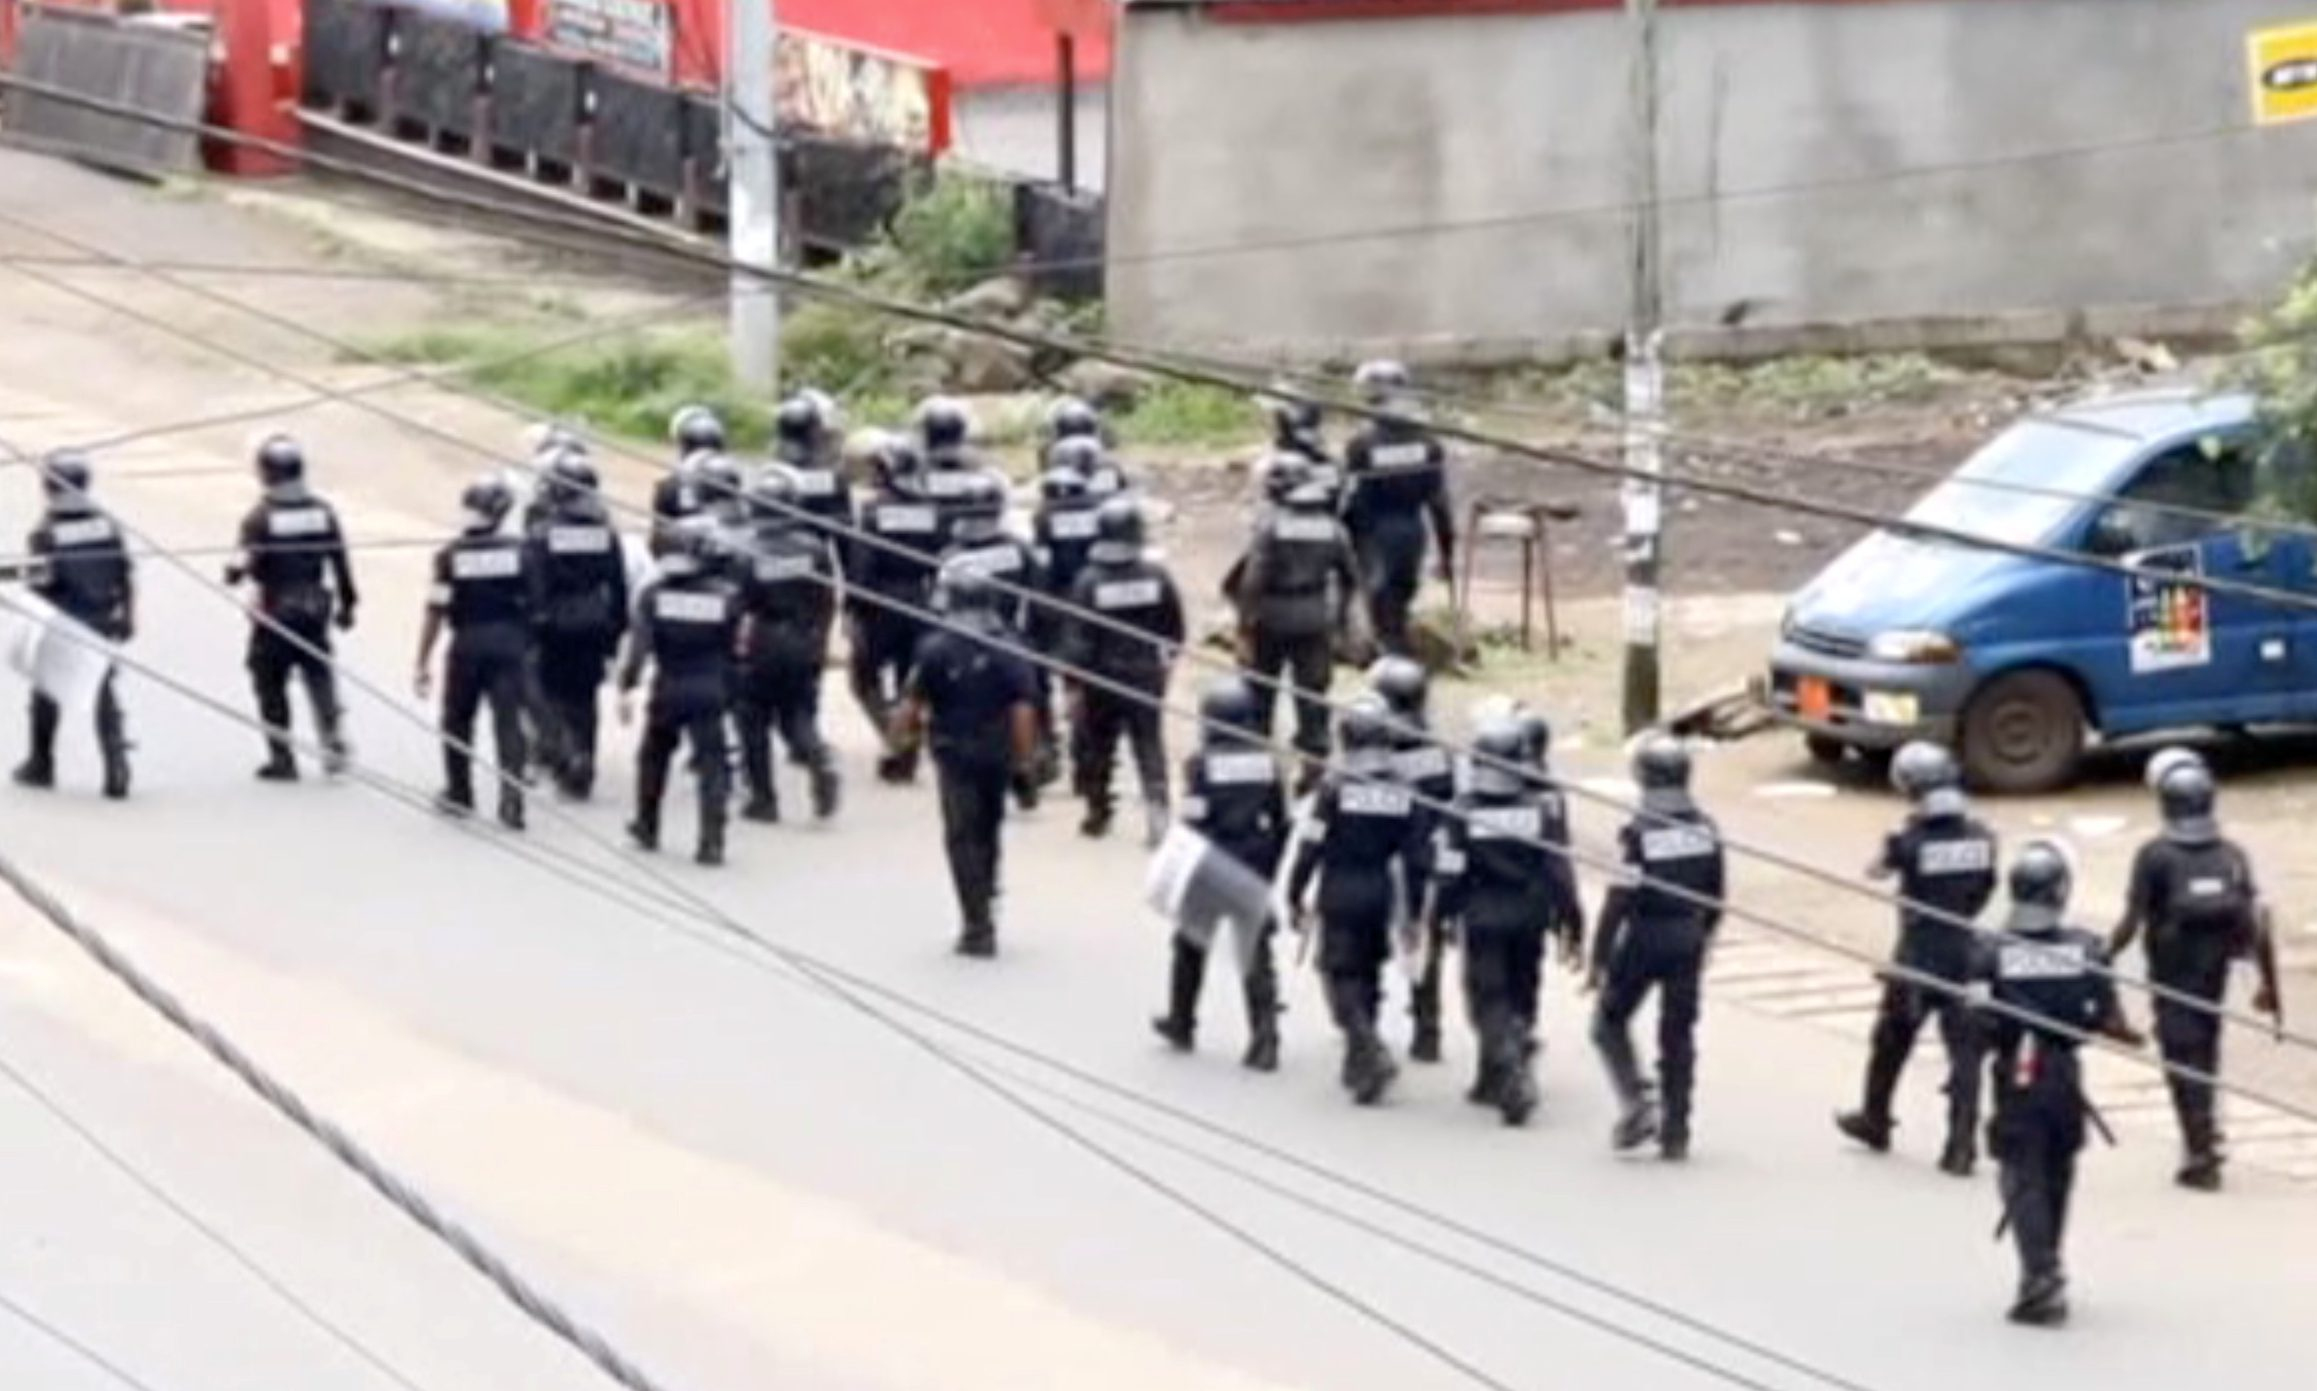 A still image taken from a video shows riot police walk along a street in the English-speaking city of Buea